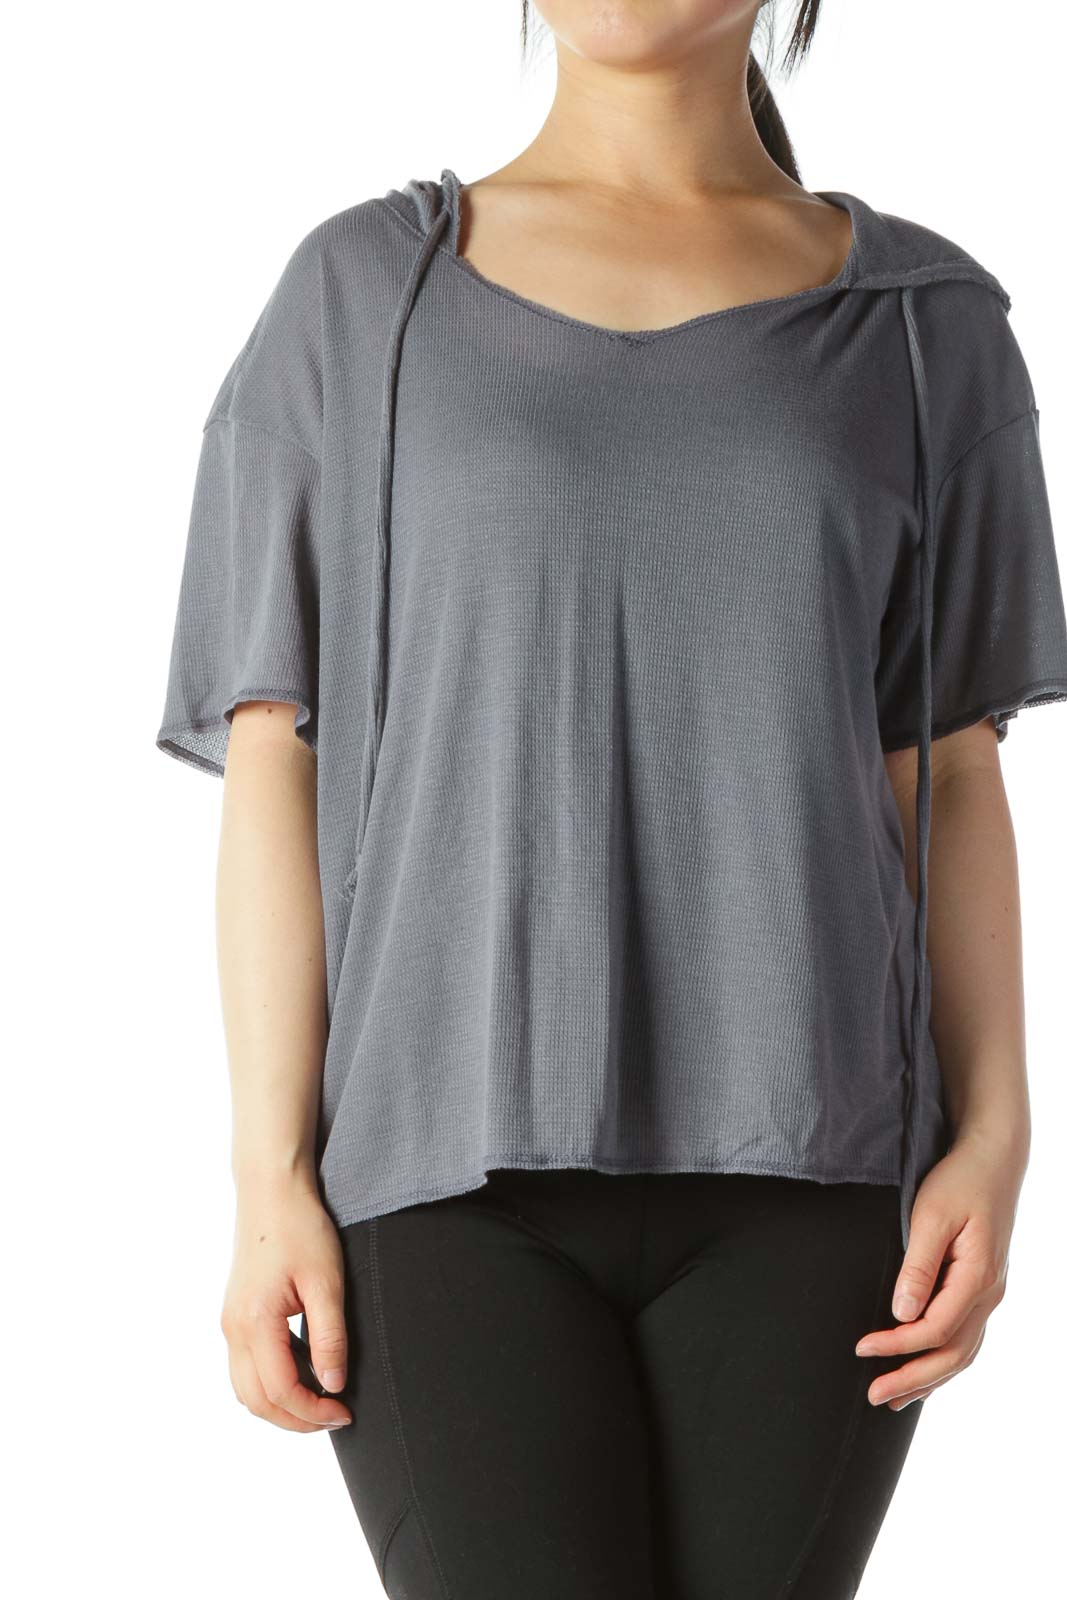 Gray Hooded Short-Sleeve Light Knit Top Front